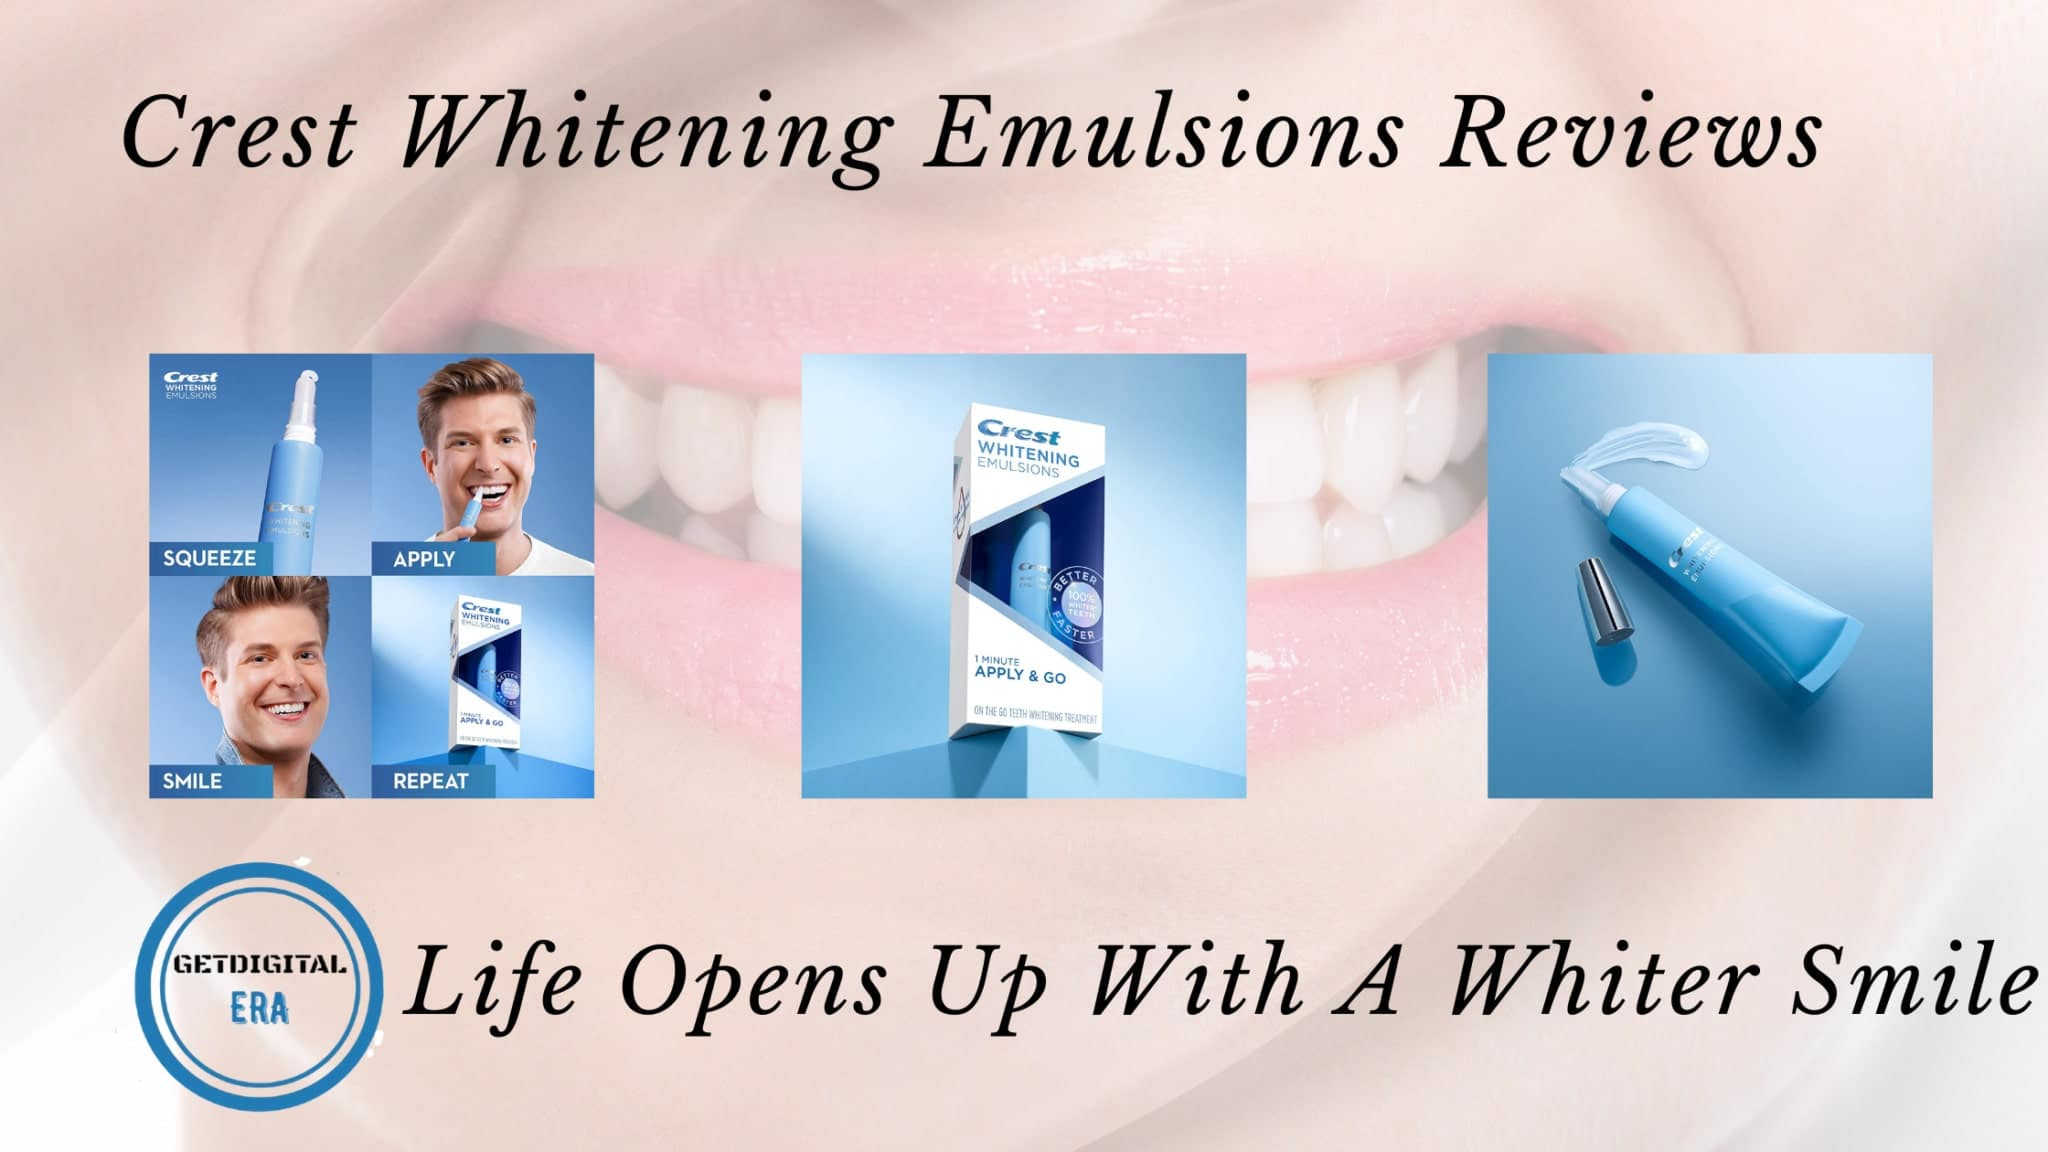 Crest Whitening Emulsion Reviews